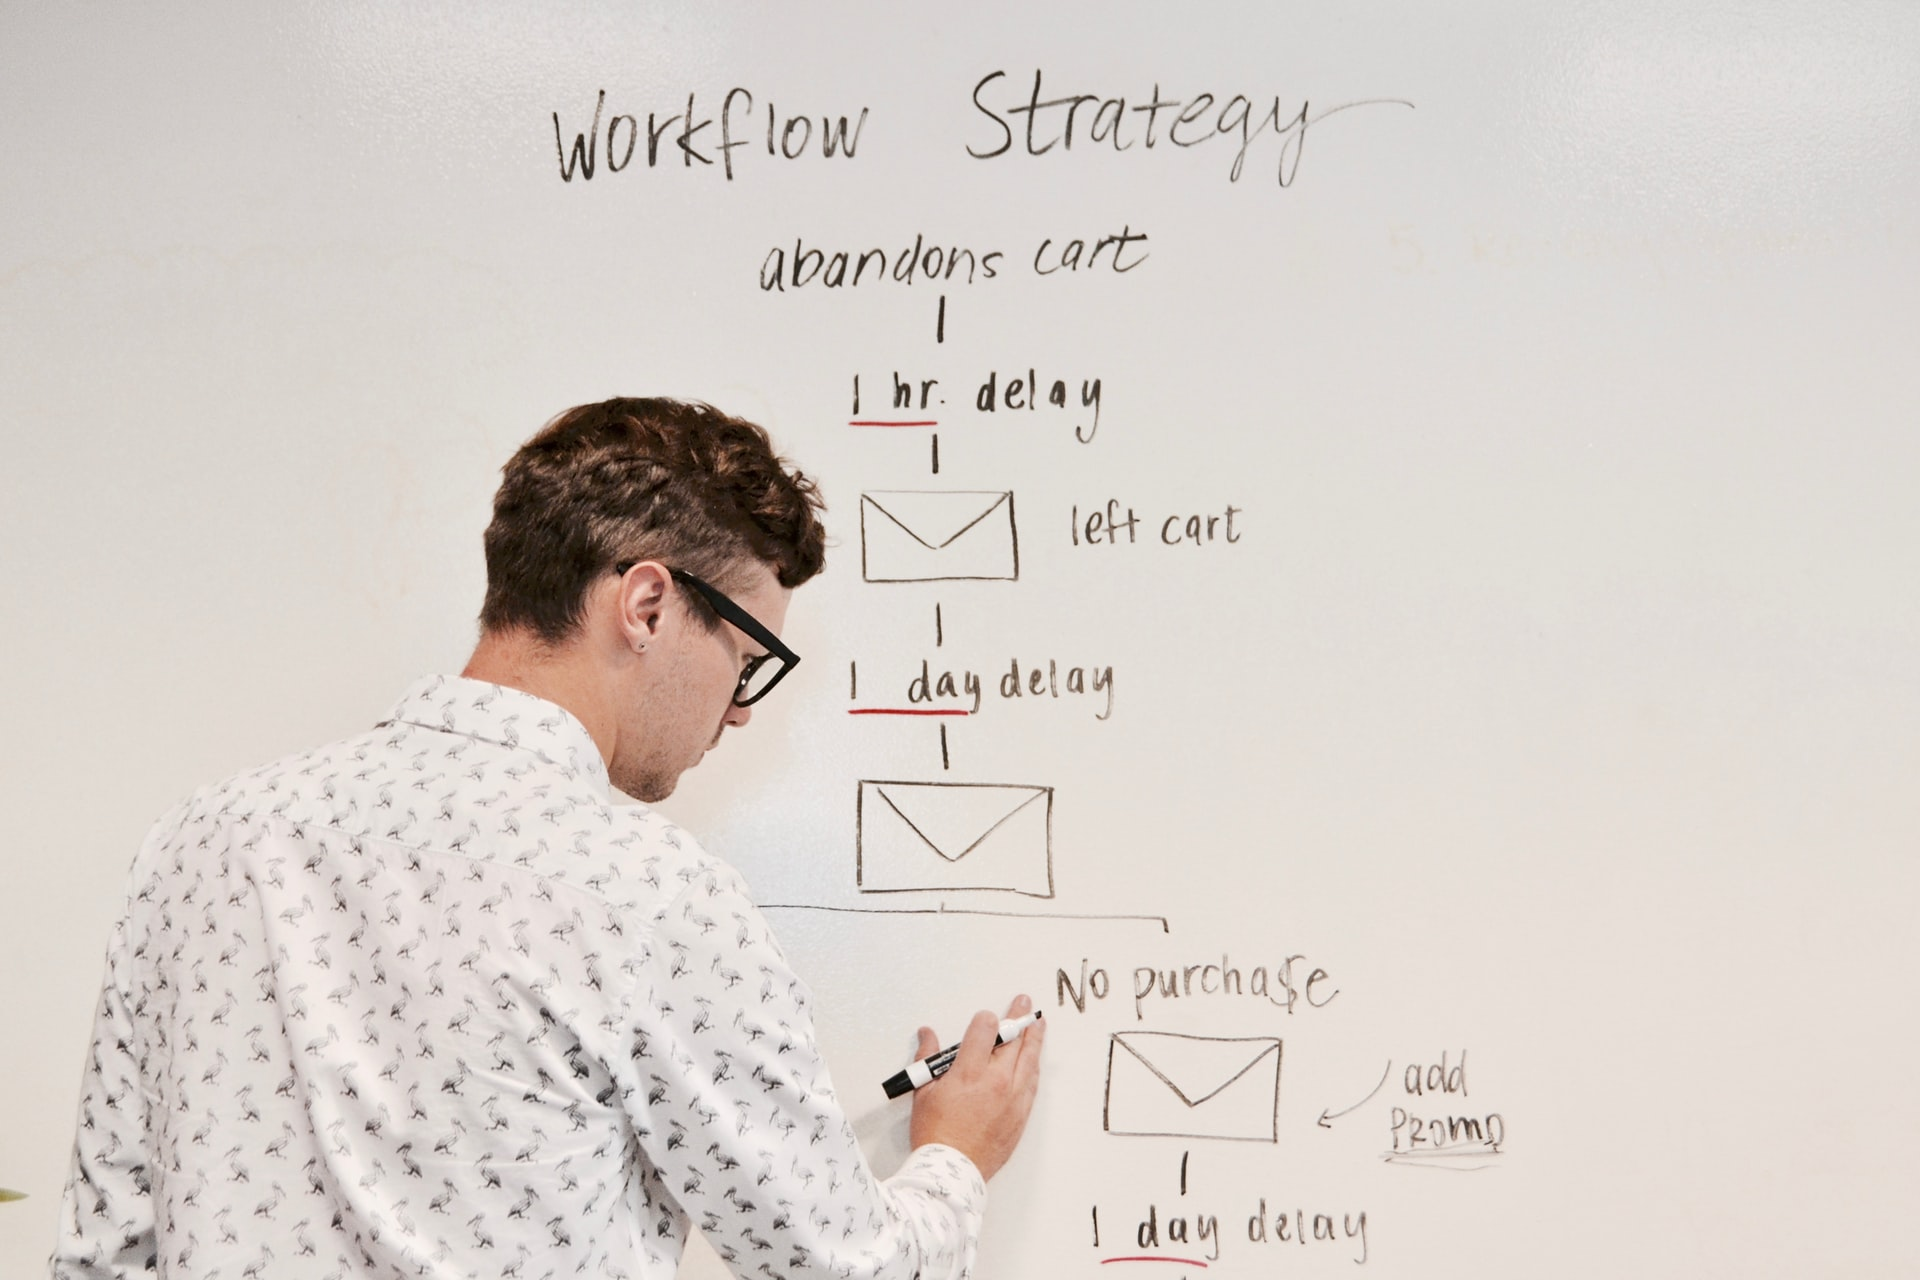 PPC Management Process Guide for Ads That Actually Convert